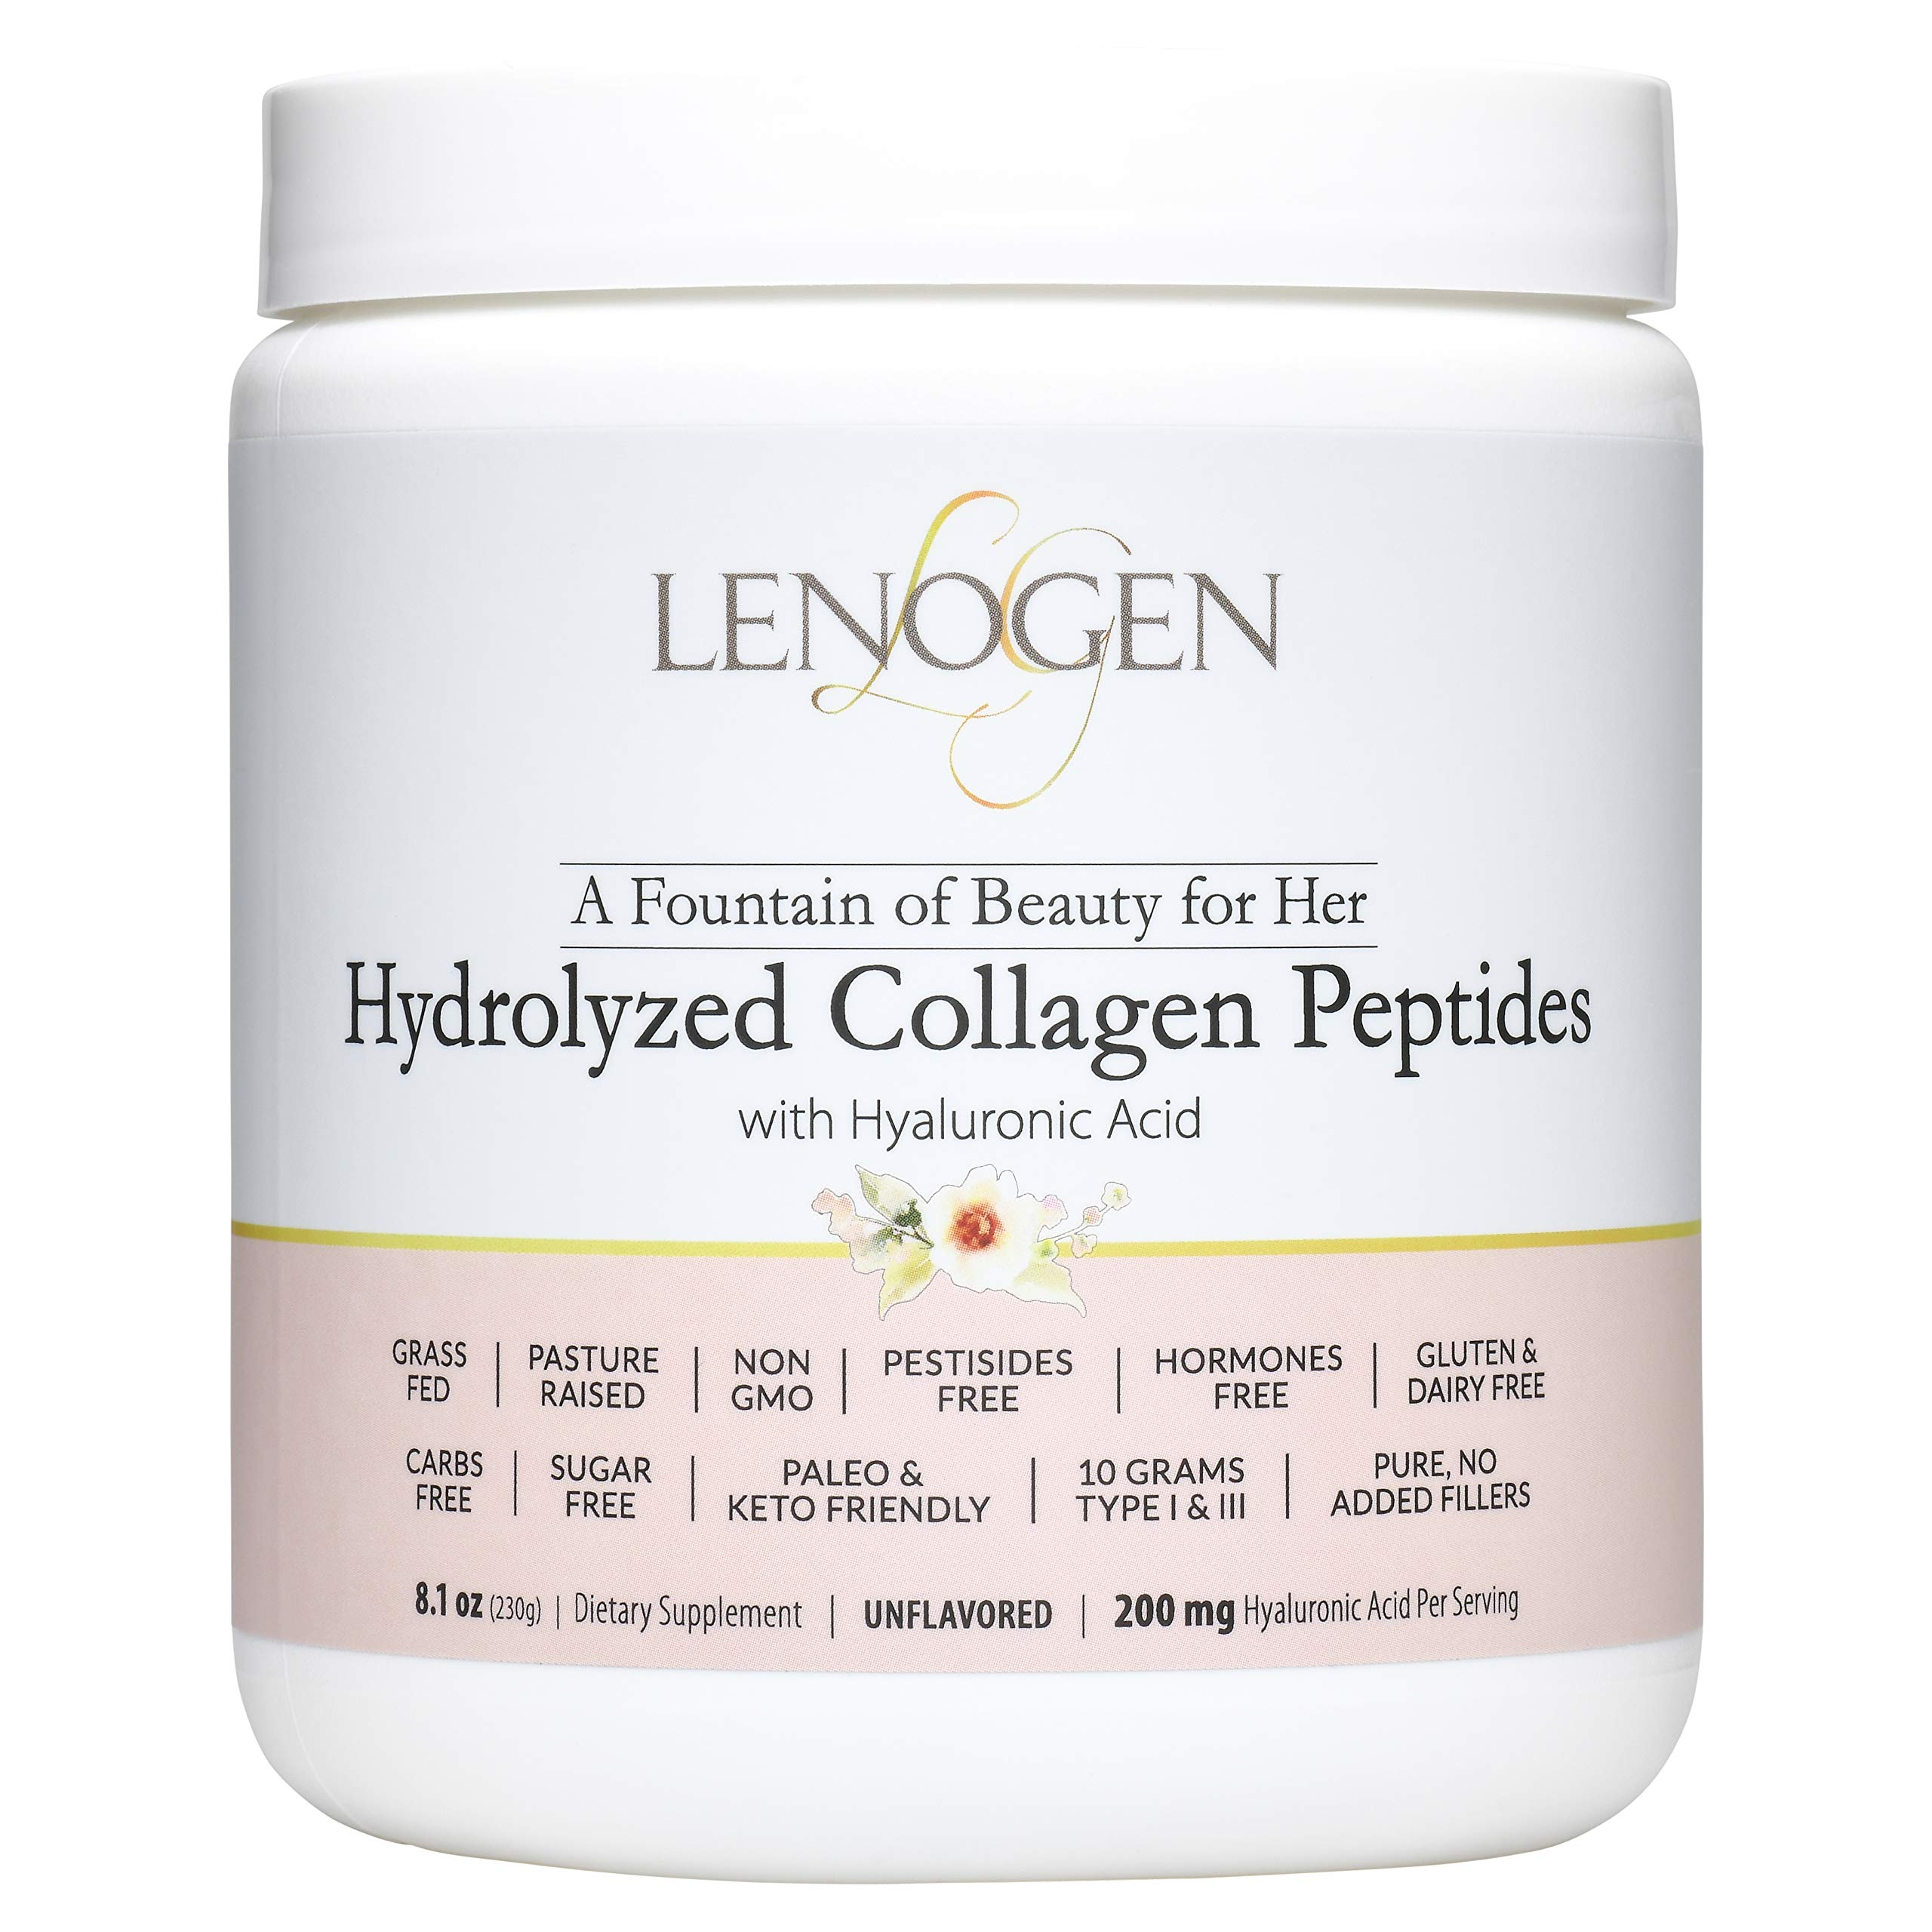 Collagen for Women Anti Aging, Anti Wrinkles, Hair Skin & Nails, Grass Fed, Non-GMO, Zero Fillers, Sugar & Carbs Free, Paleo & Keto Diets Friendly, Peptides & Hyaluronic Acid, Unflavored by Lenovie